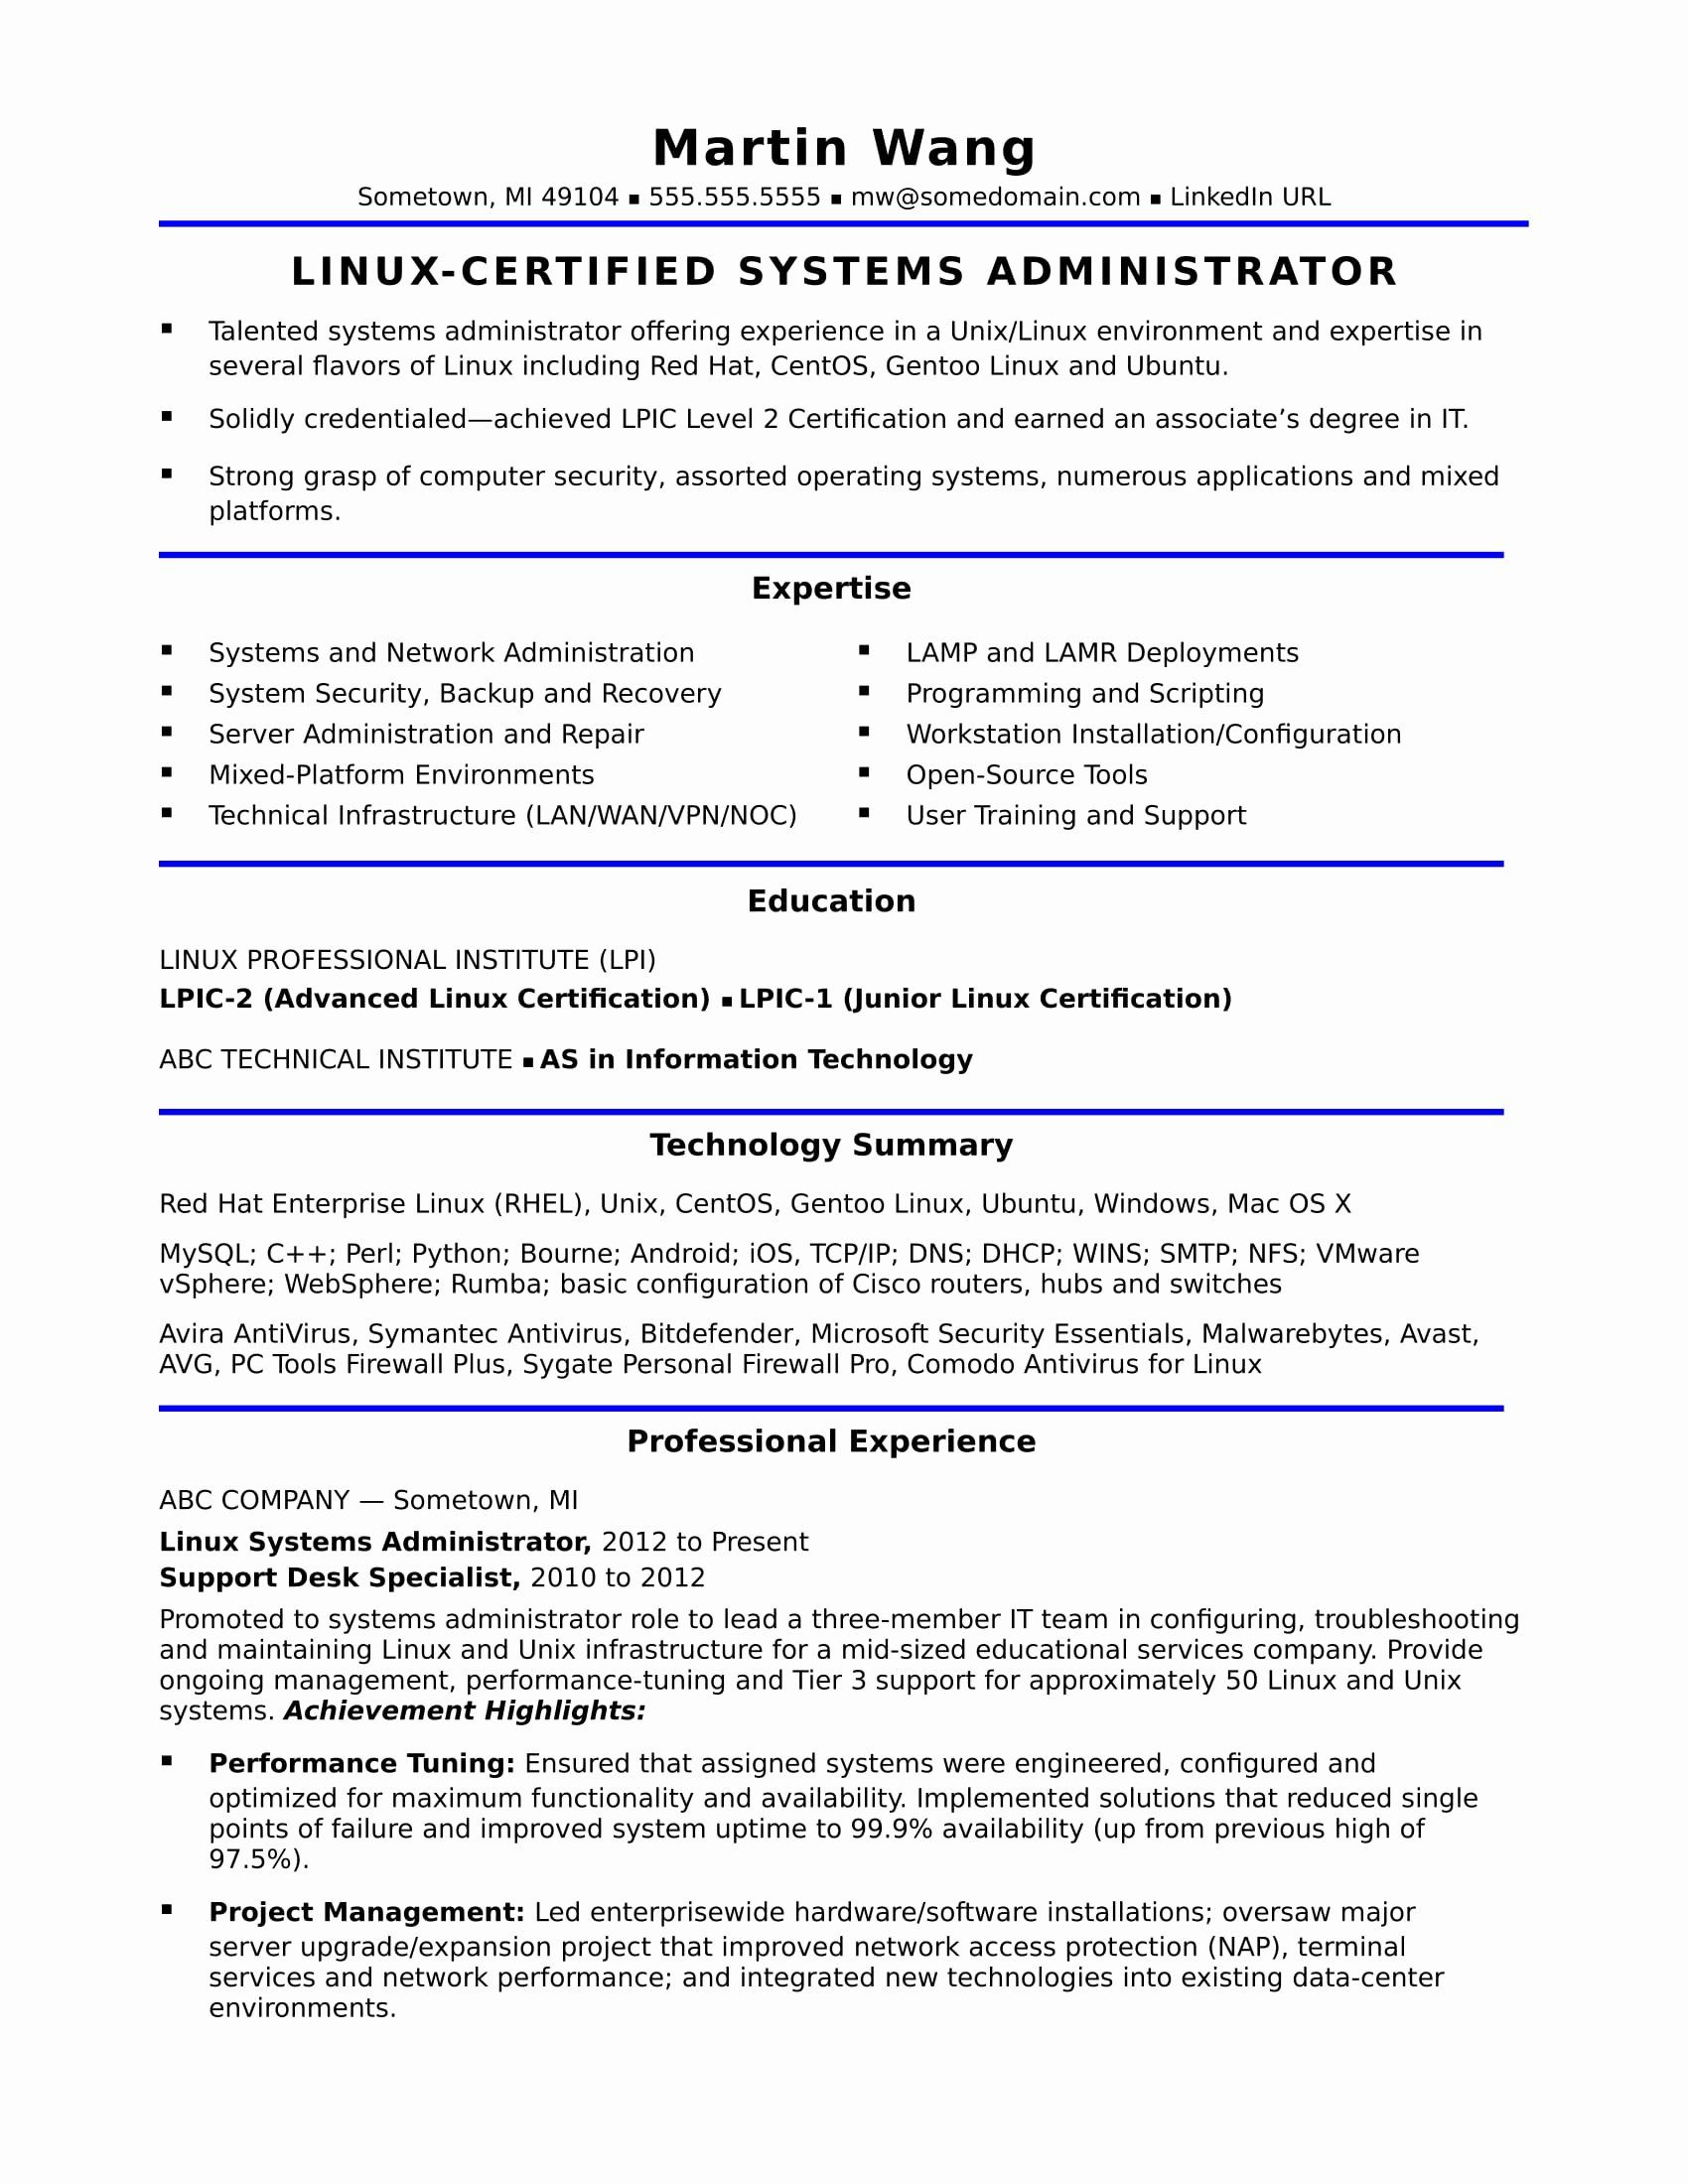 25 System Administrator Resume Template in 2020 System